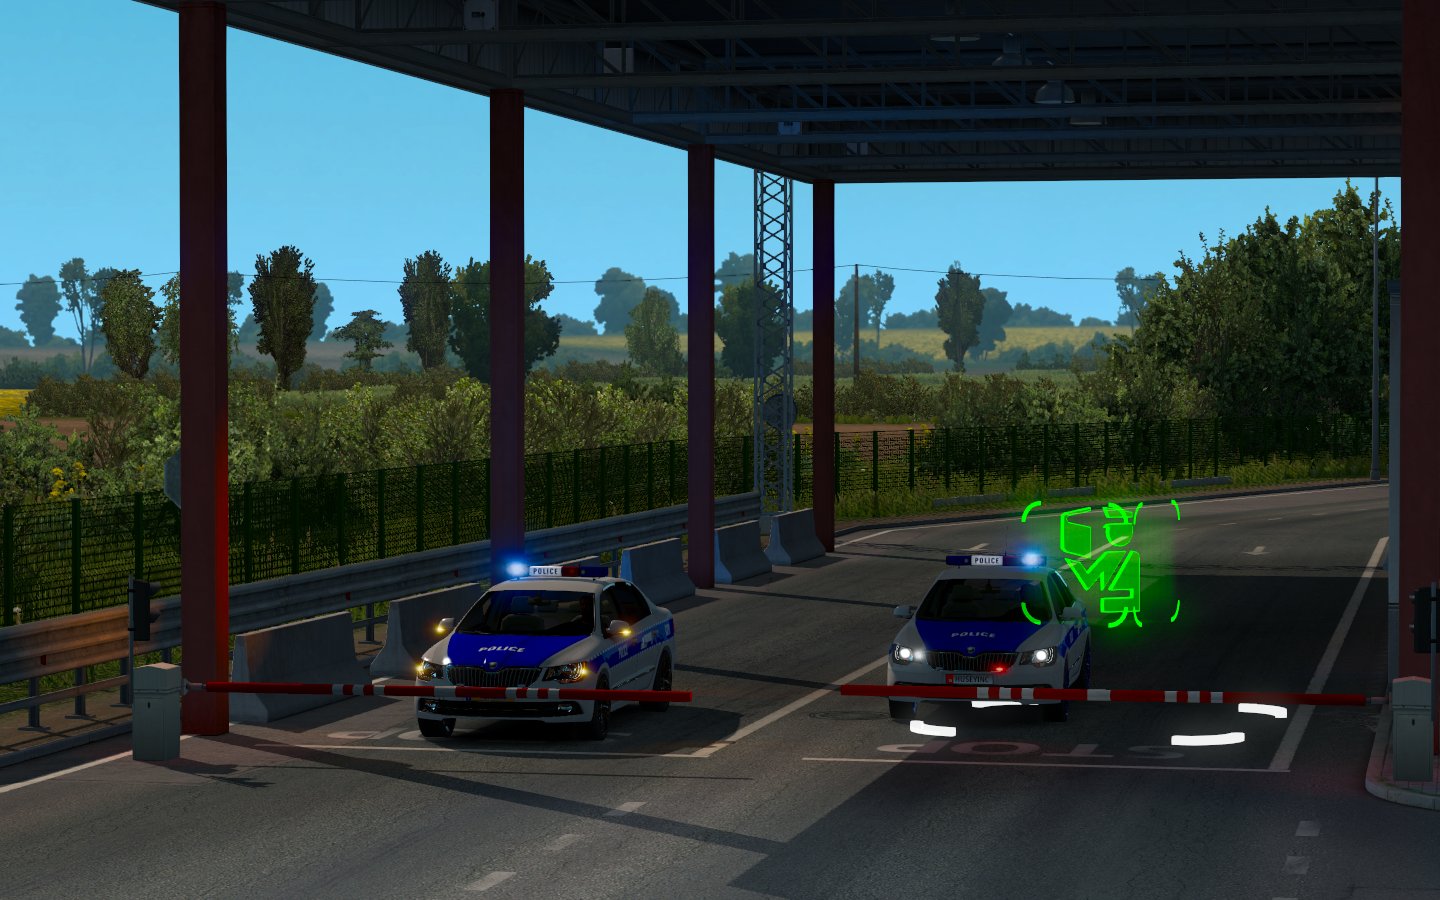 ets2_20190429_193604_00.png